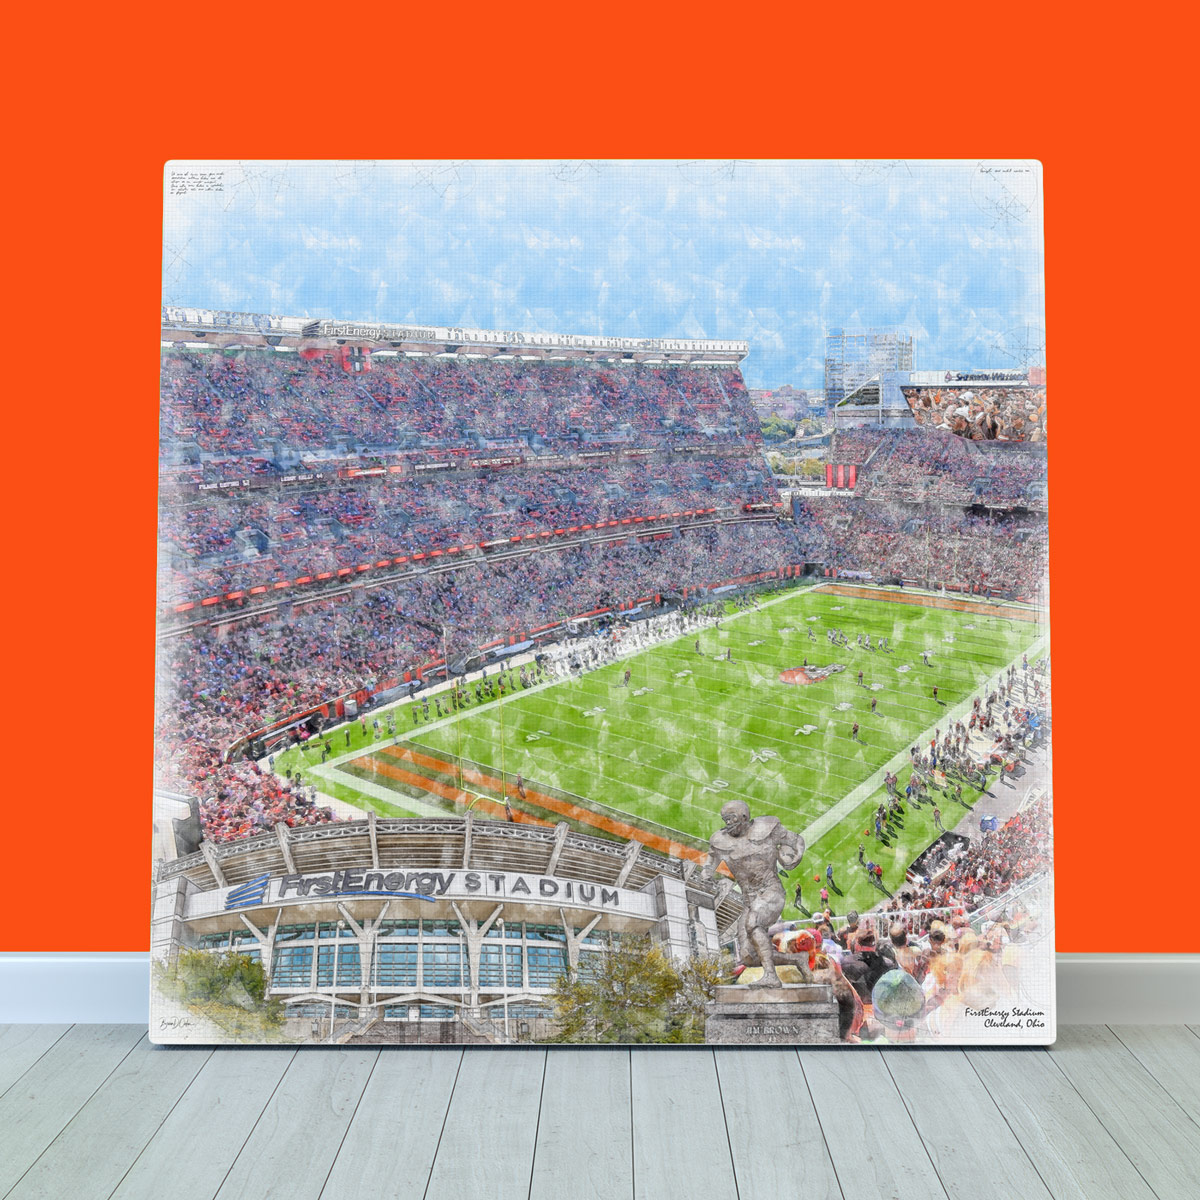 RT/Follow as I'm doing a #giveaway with @BrownsHuddle  for tomorrow's #Browns game. One person will win a stadium print. #BrownsTwitter 🏈👉